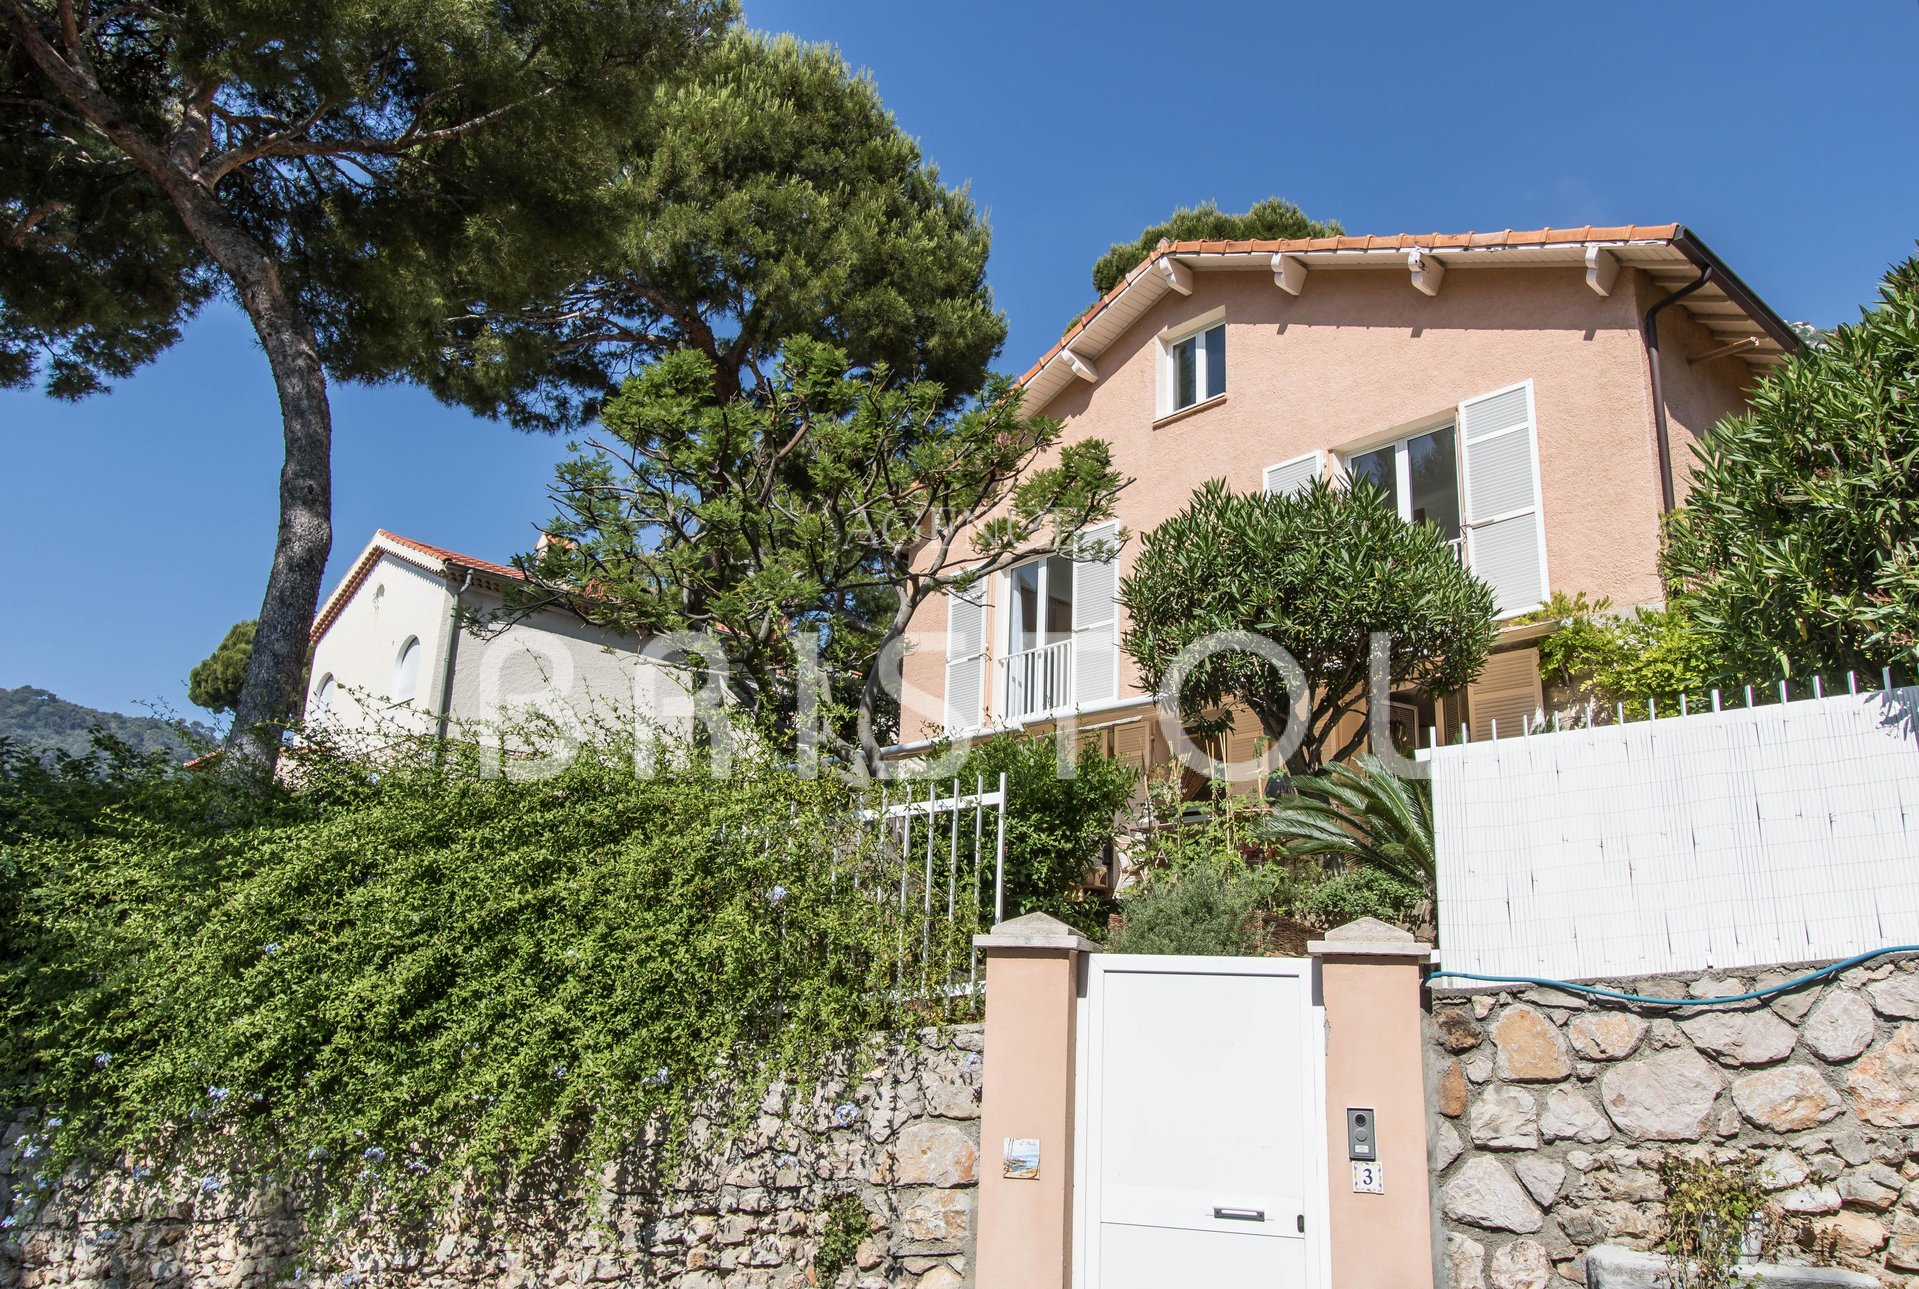 Charming house a few steps from the beach in Eze seaside